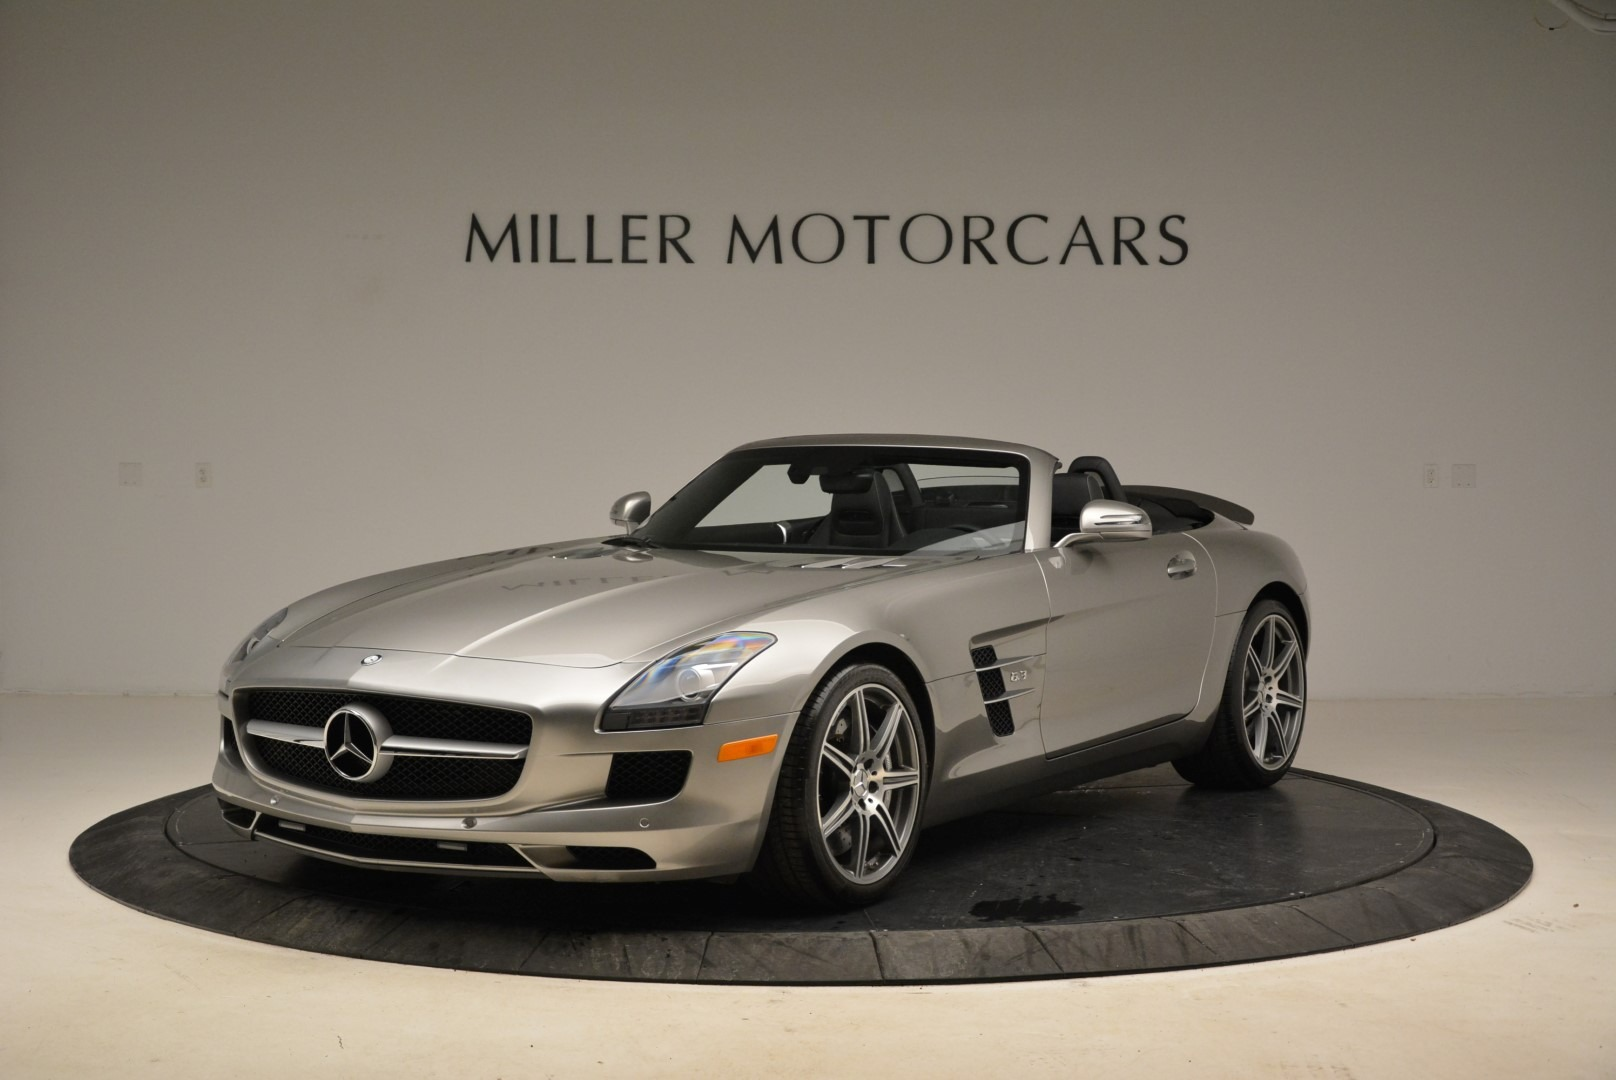 Used 2012 Mercedes-Benz SLS AMG for sale Sold at Bentley Greenwich in Greenwich CT 06830 1